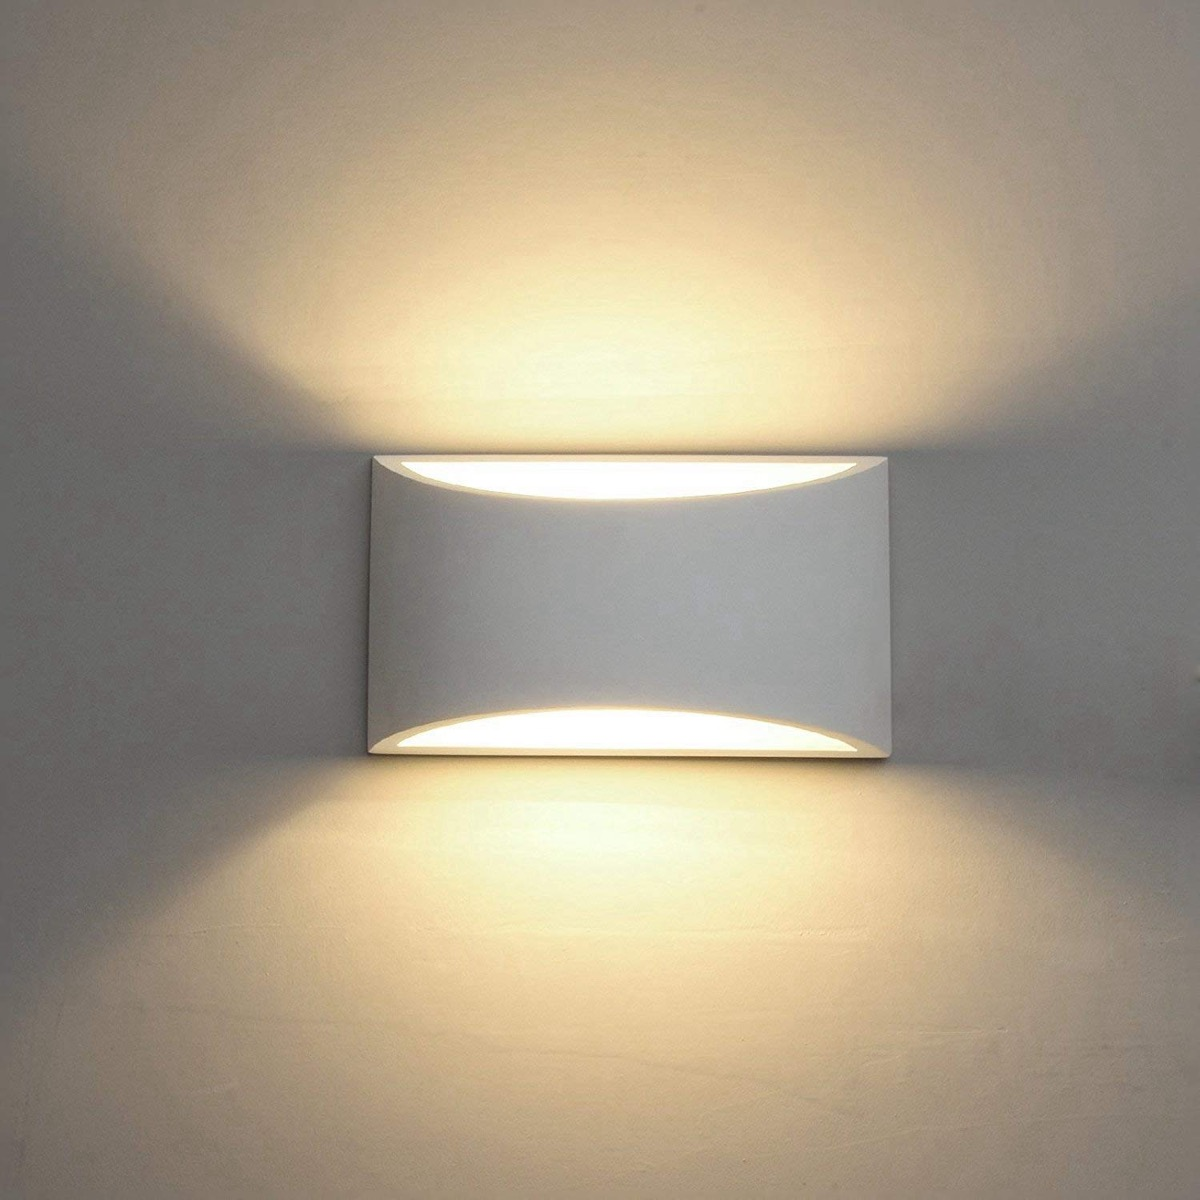 Modern-White-Wall-Sconce-Minimalist-Amazon-Cheap-Affordable